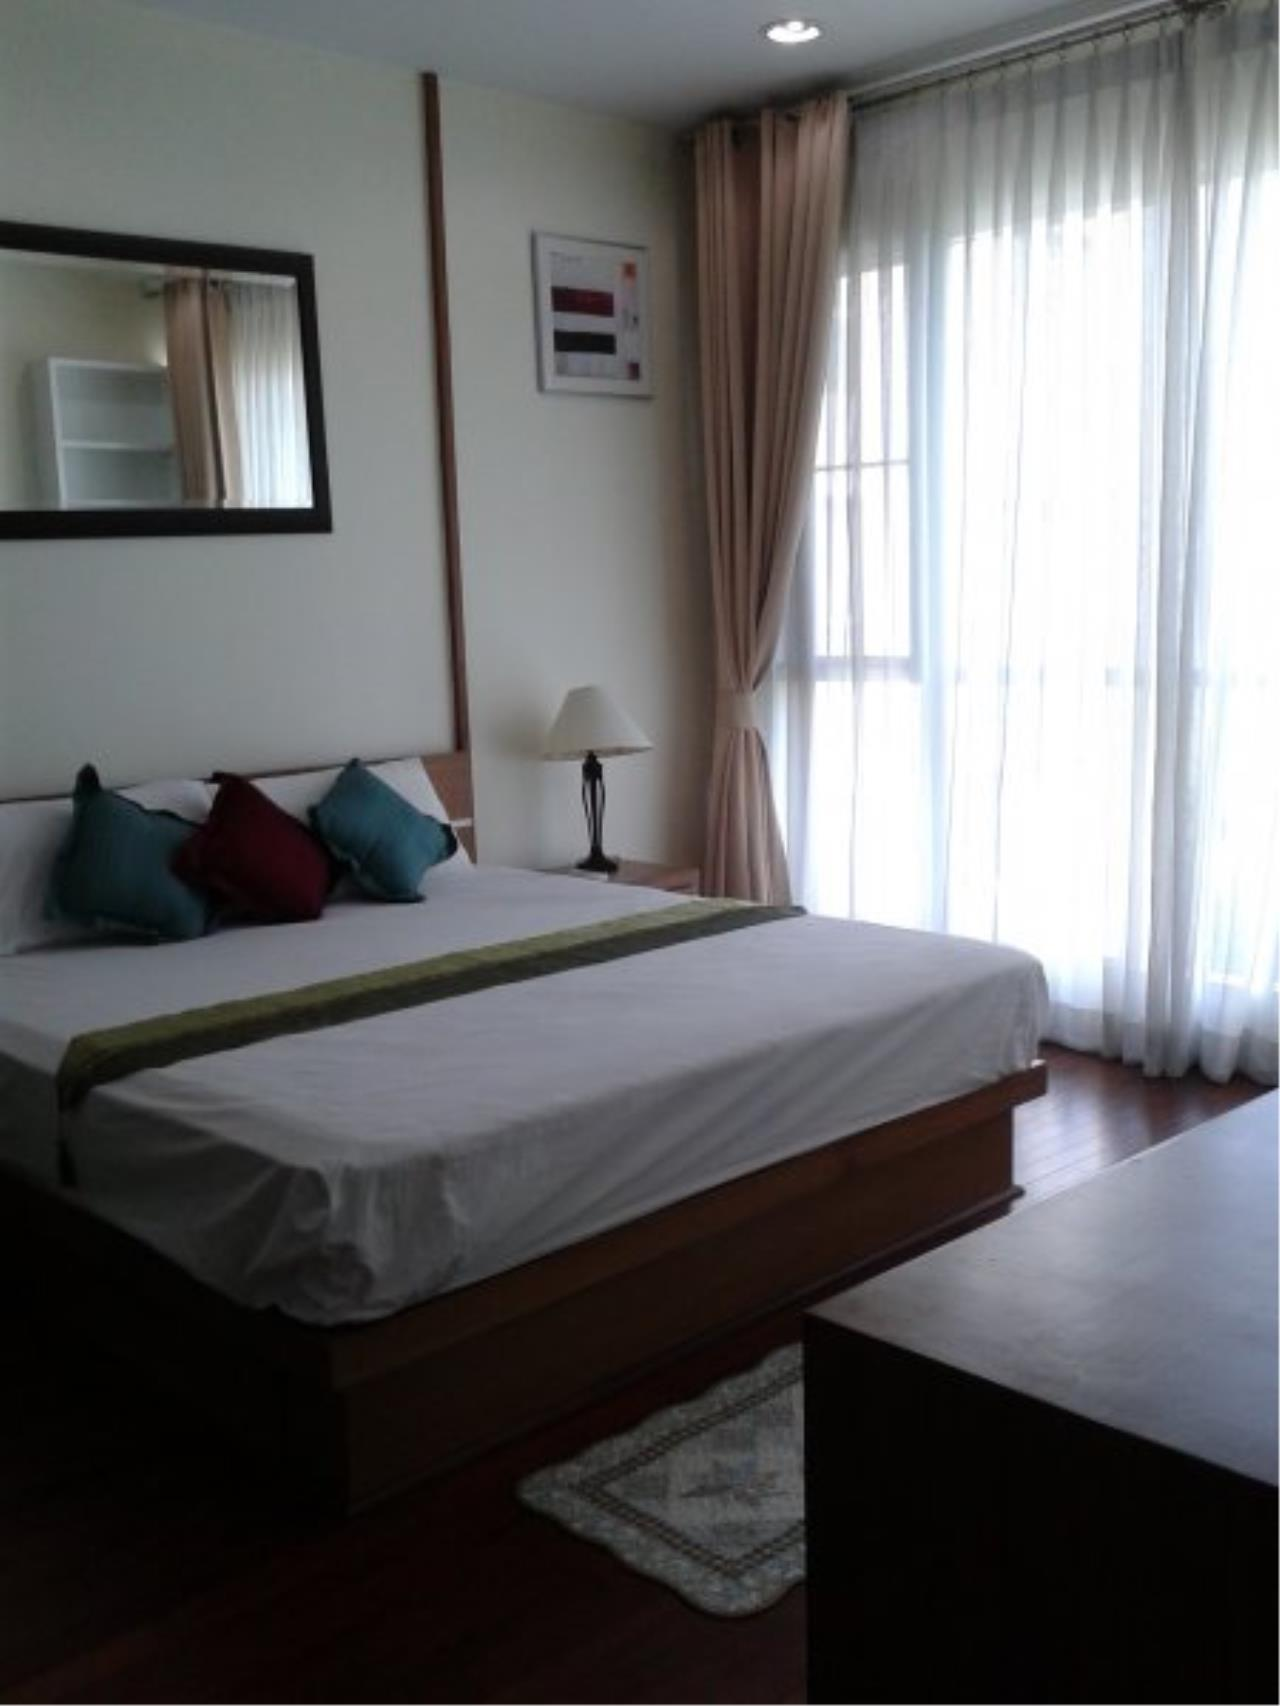 Piri Property Agency's Comfort 2 Bedrooms in The Address Chidlom Condo for rent 2